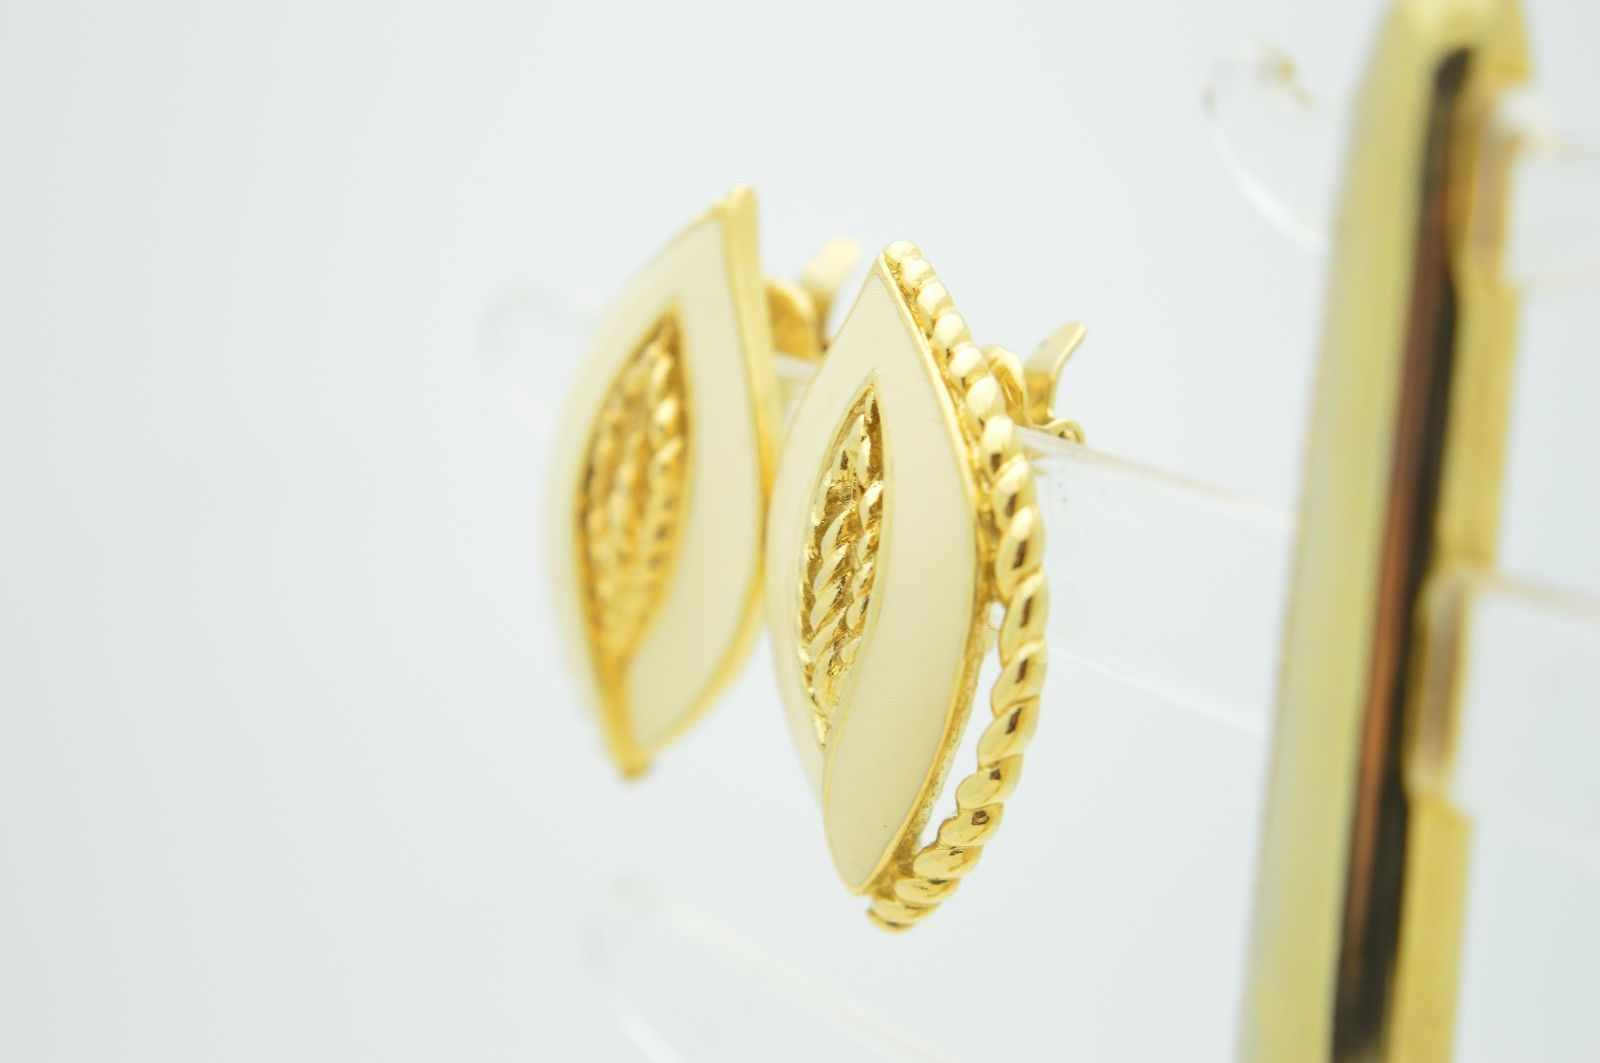 VTG CROWN TRIFARI 1970s Gold Tone Ivory Colored Enamel Clip Earrings